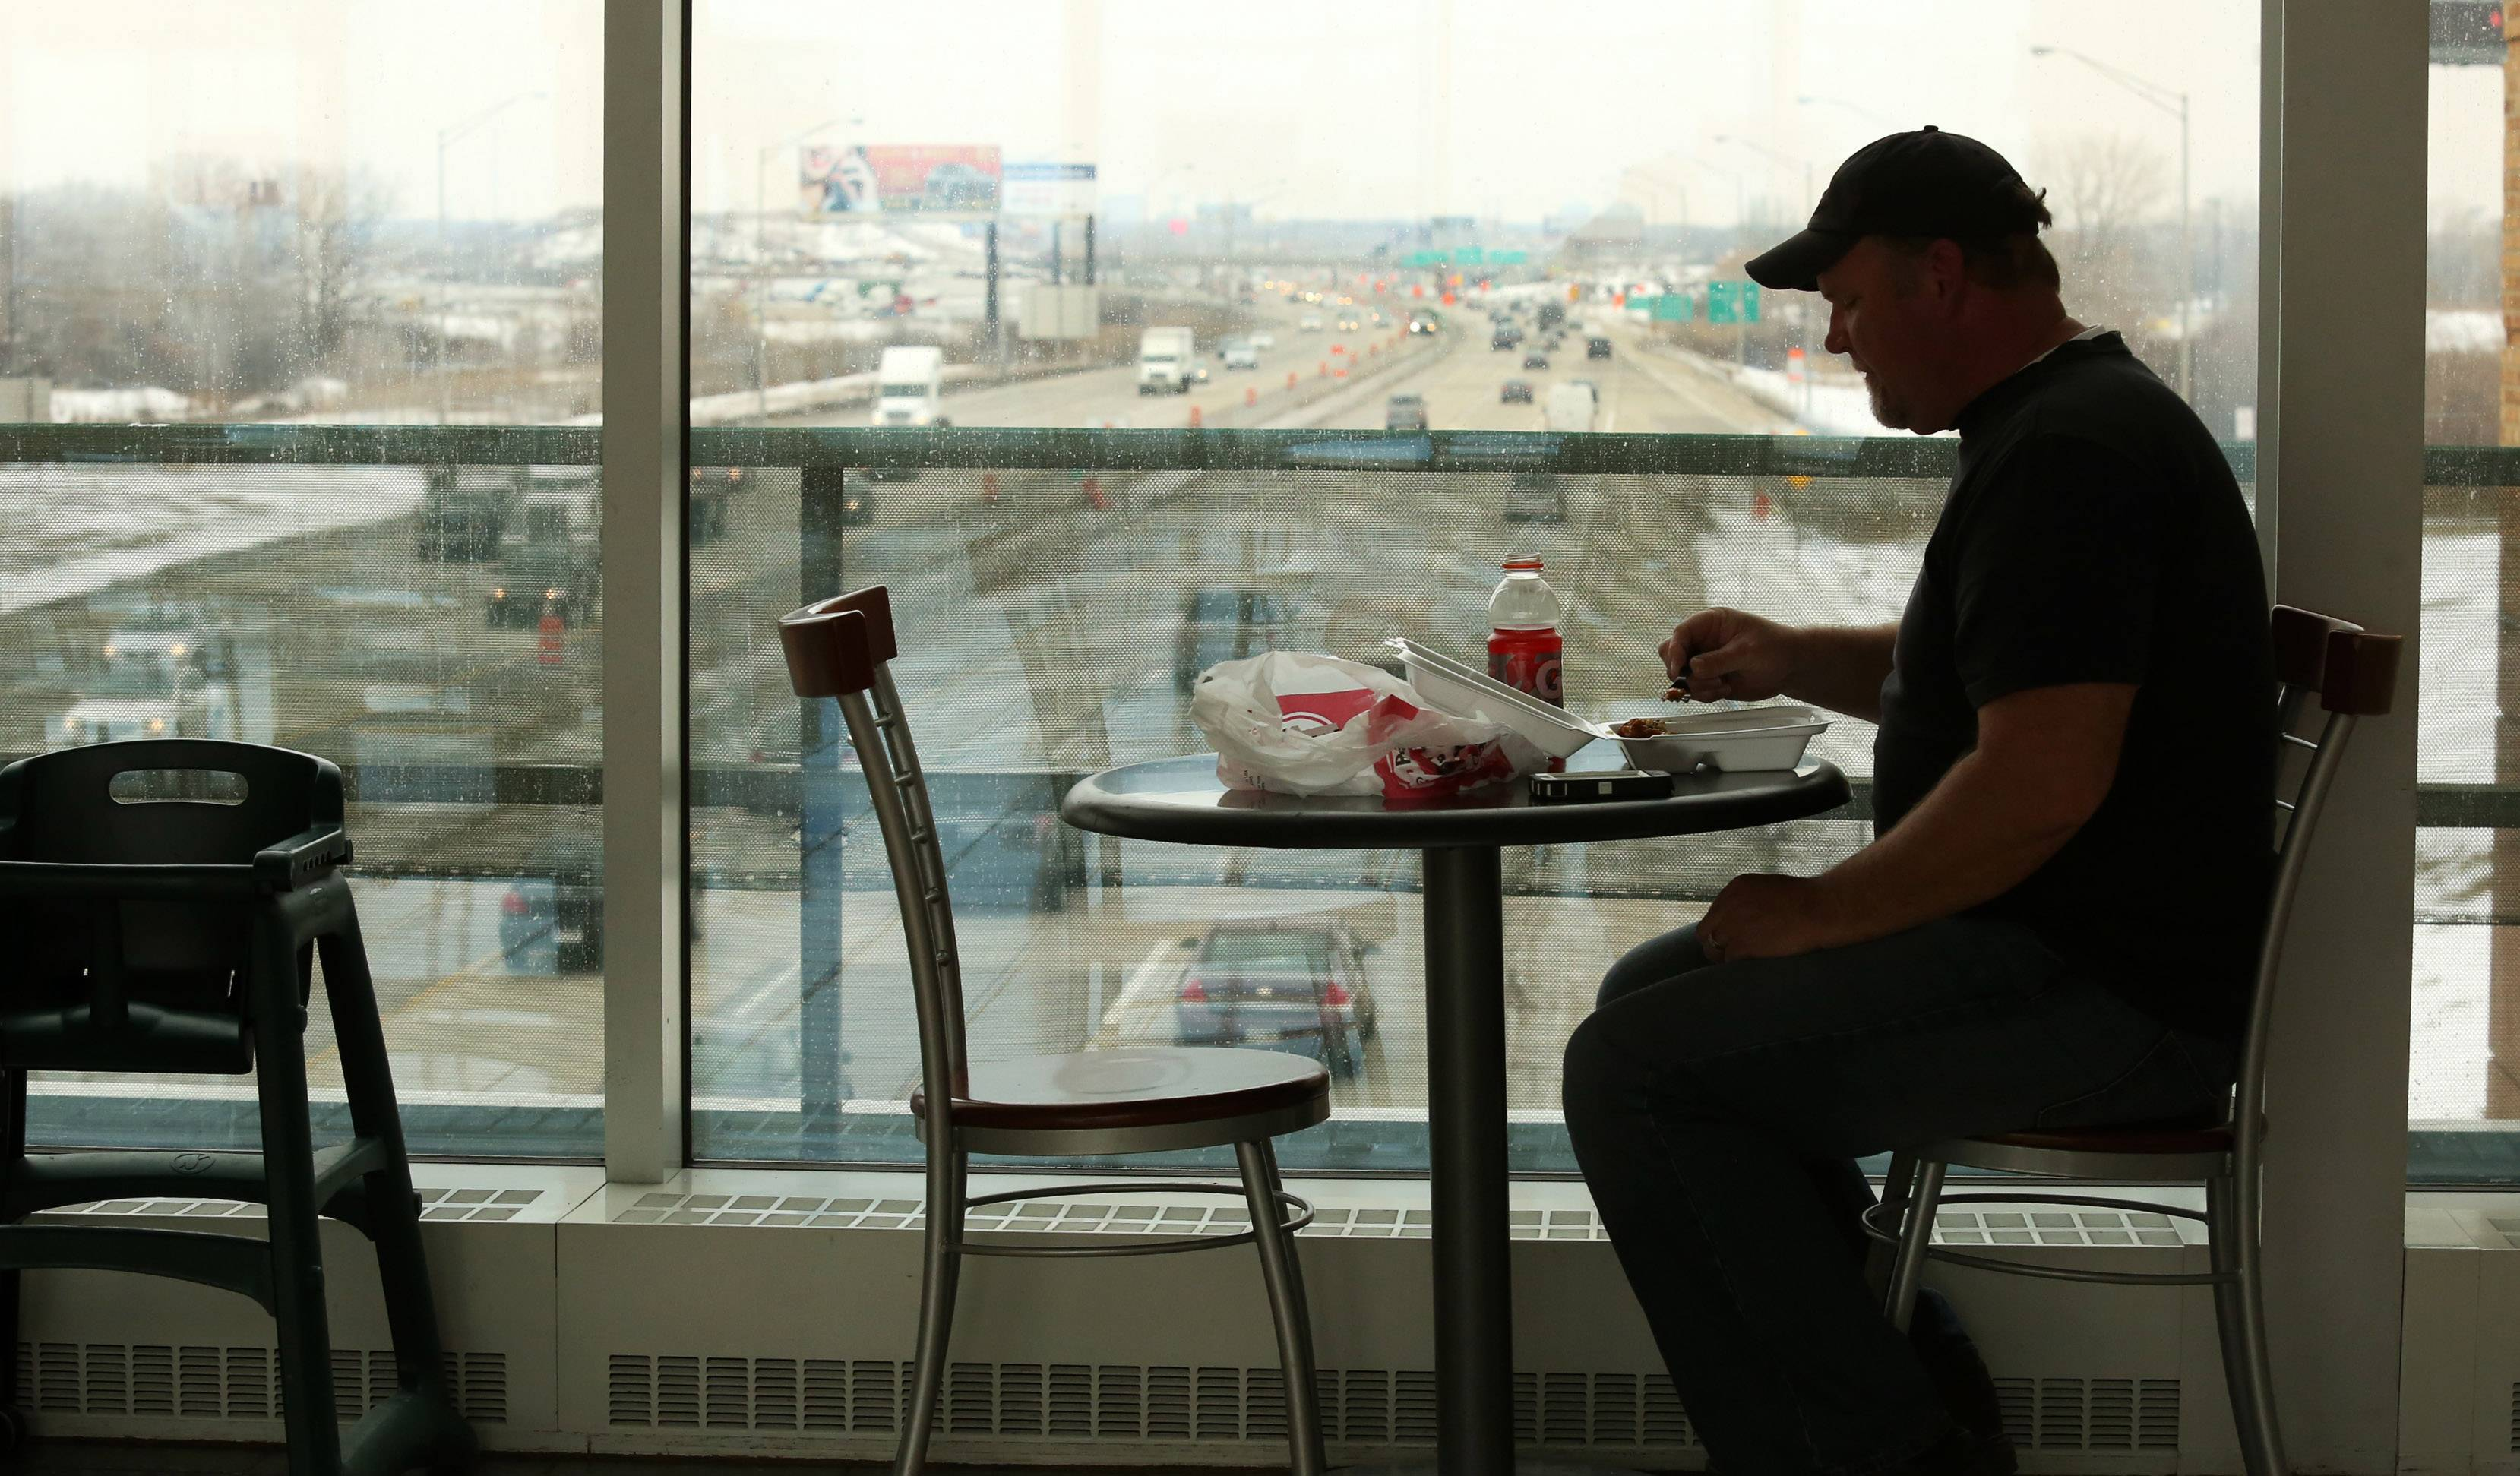 Jim Scharpf eats lunch in the Des Plaines Tollway Oasis on Thursday, March 13, 2014. View is looking west at the Jane Addams Memorial Tollway.